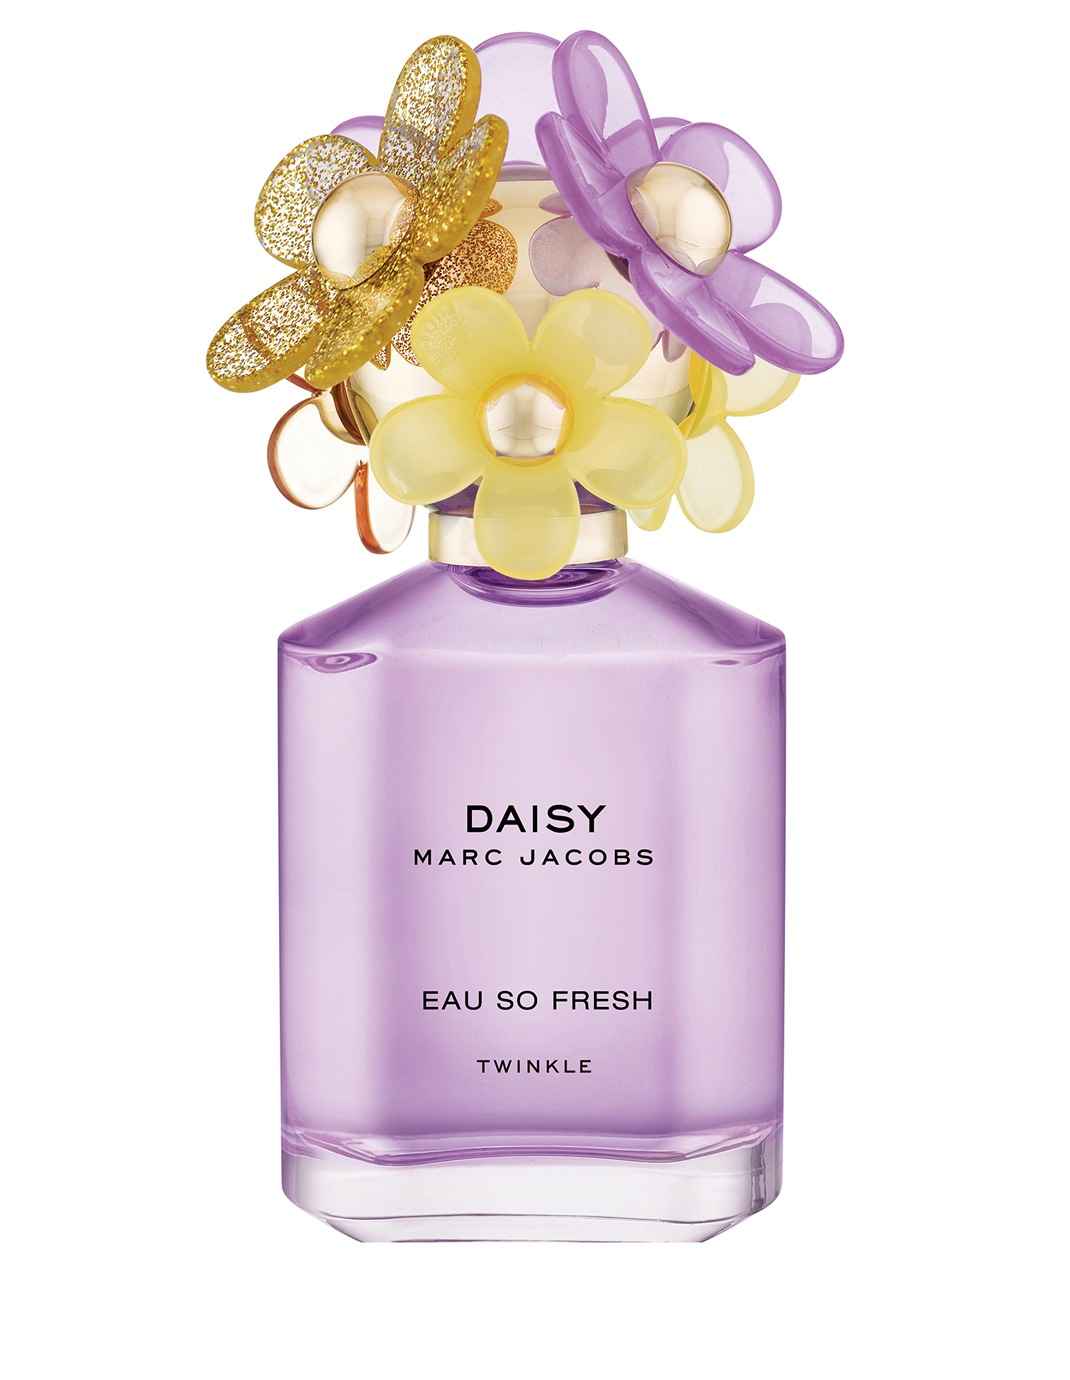 Marc jacobs daisy eau so fresh twinkle edt 75ml limited edition marc jacobs daisy eau so fresh twinkle edt 75ml limited edition myer online izmirmasajfo Image collections